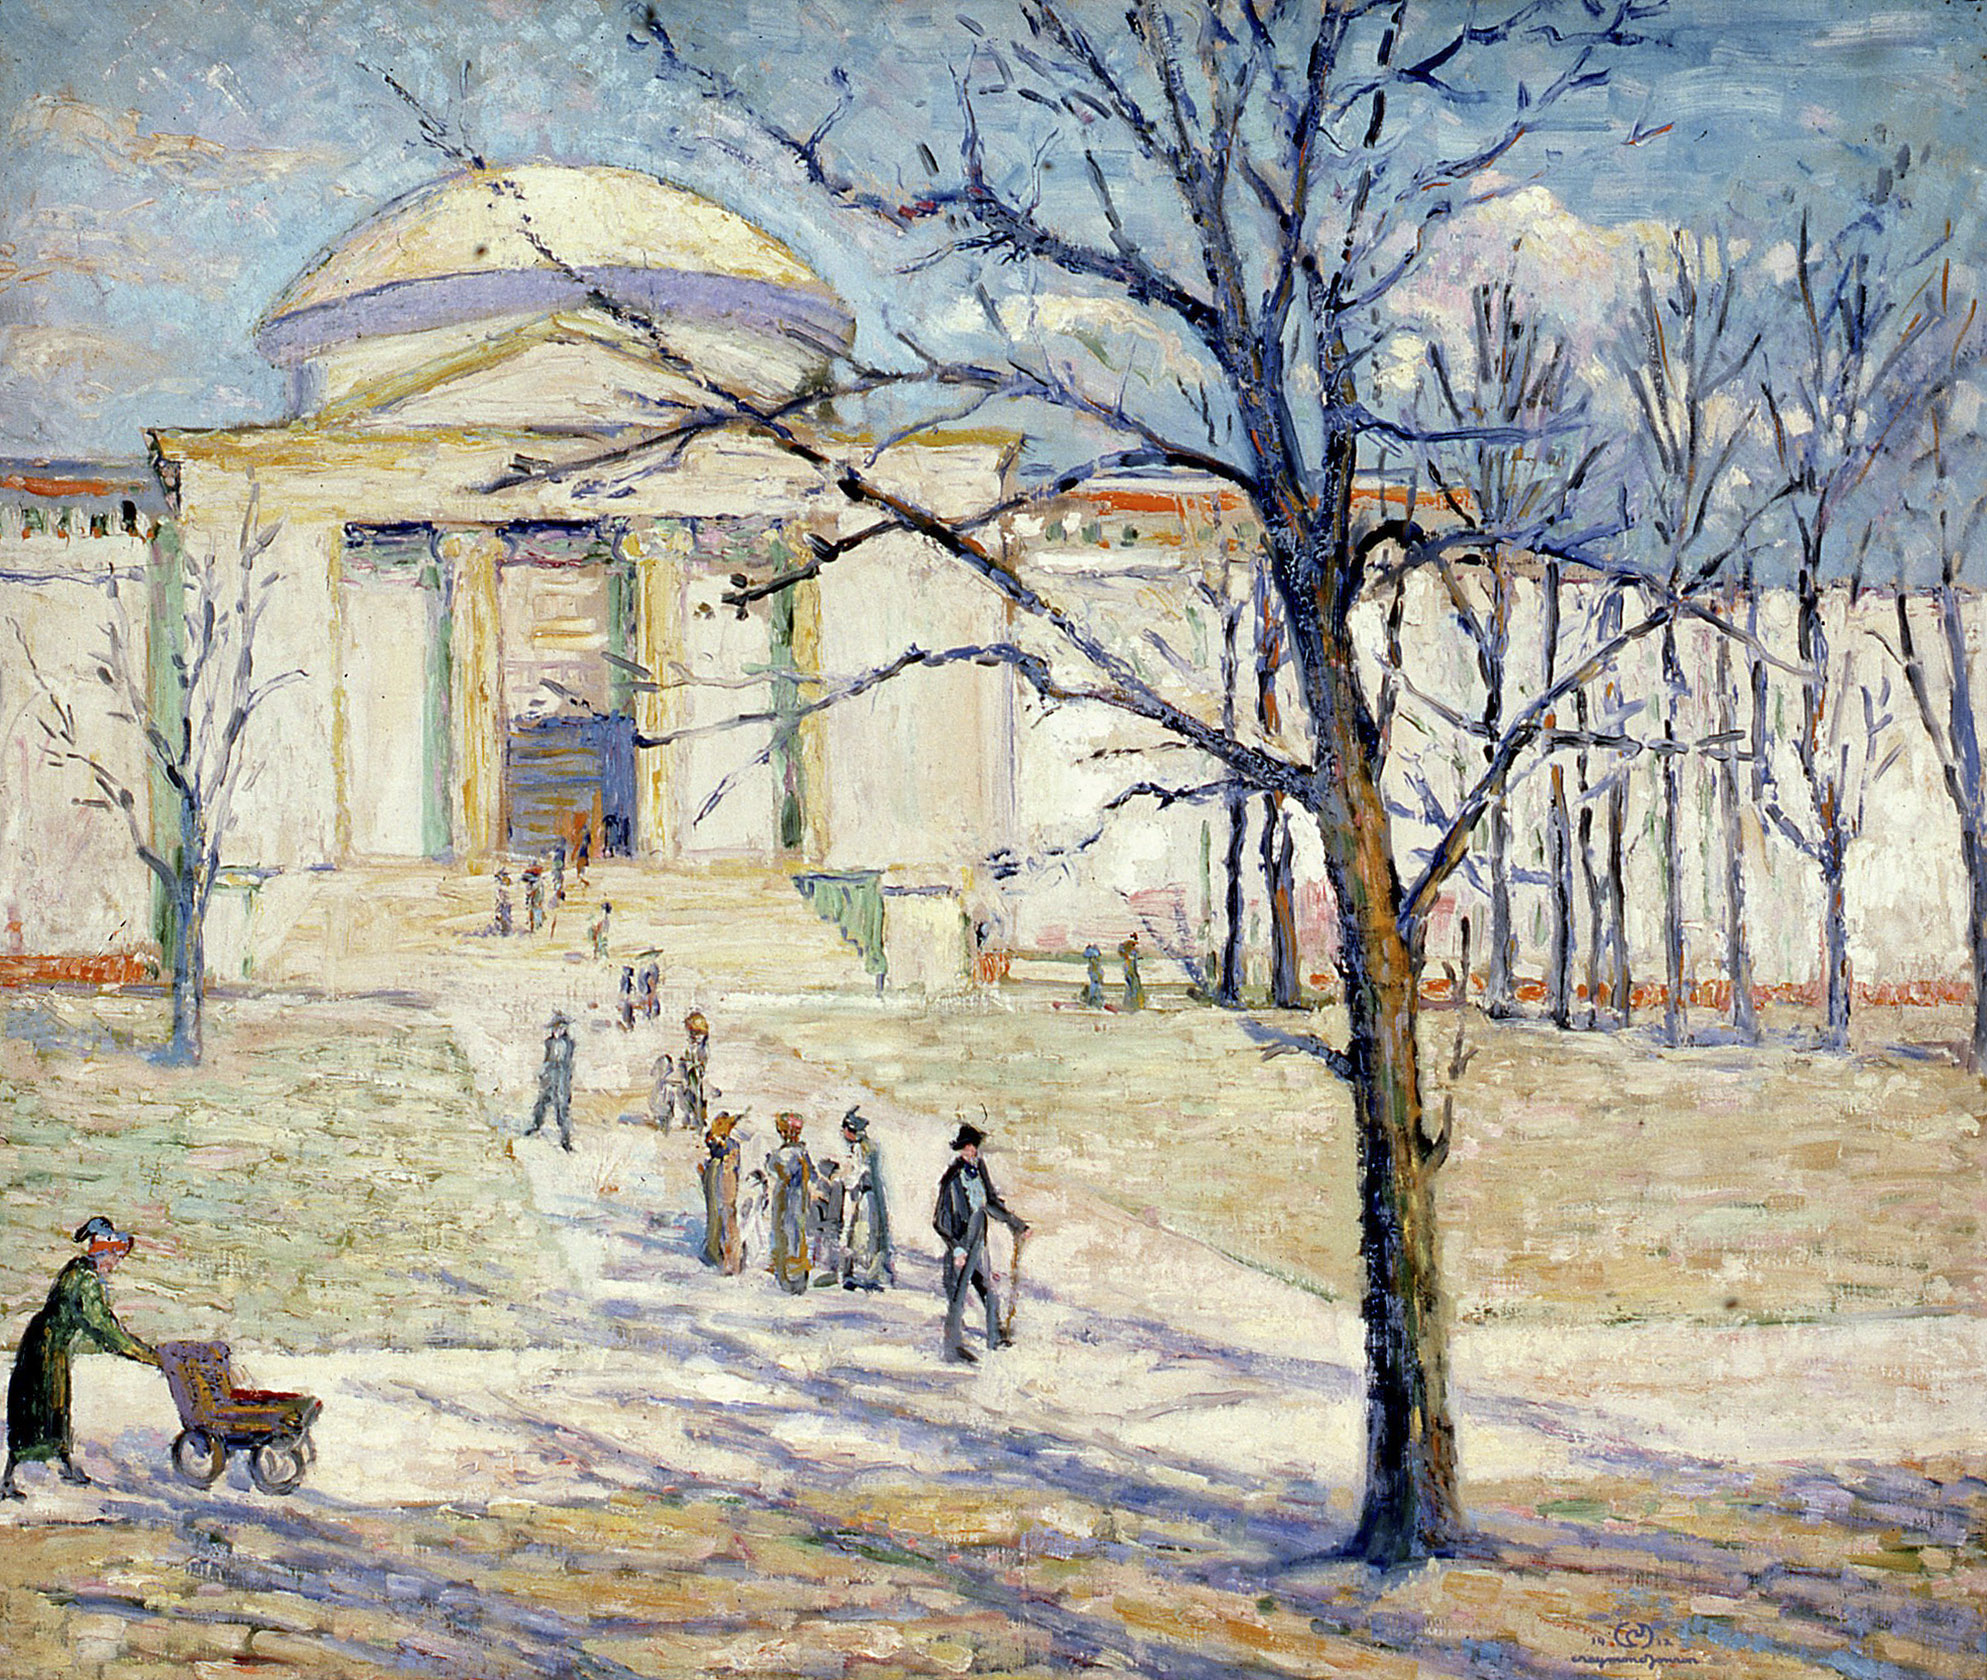 Field Museum - Chicago, 1912, Oil on canvas